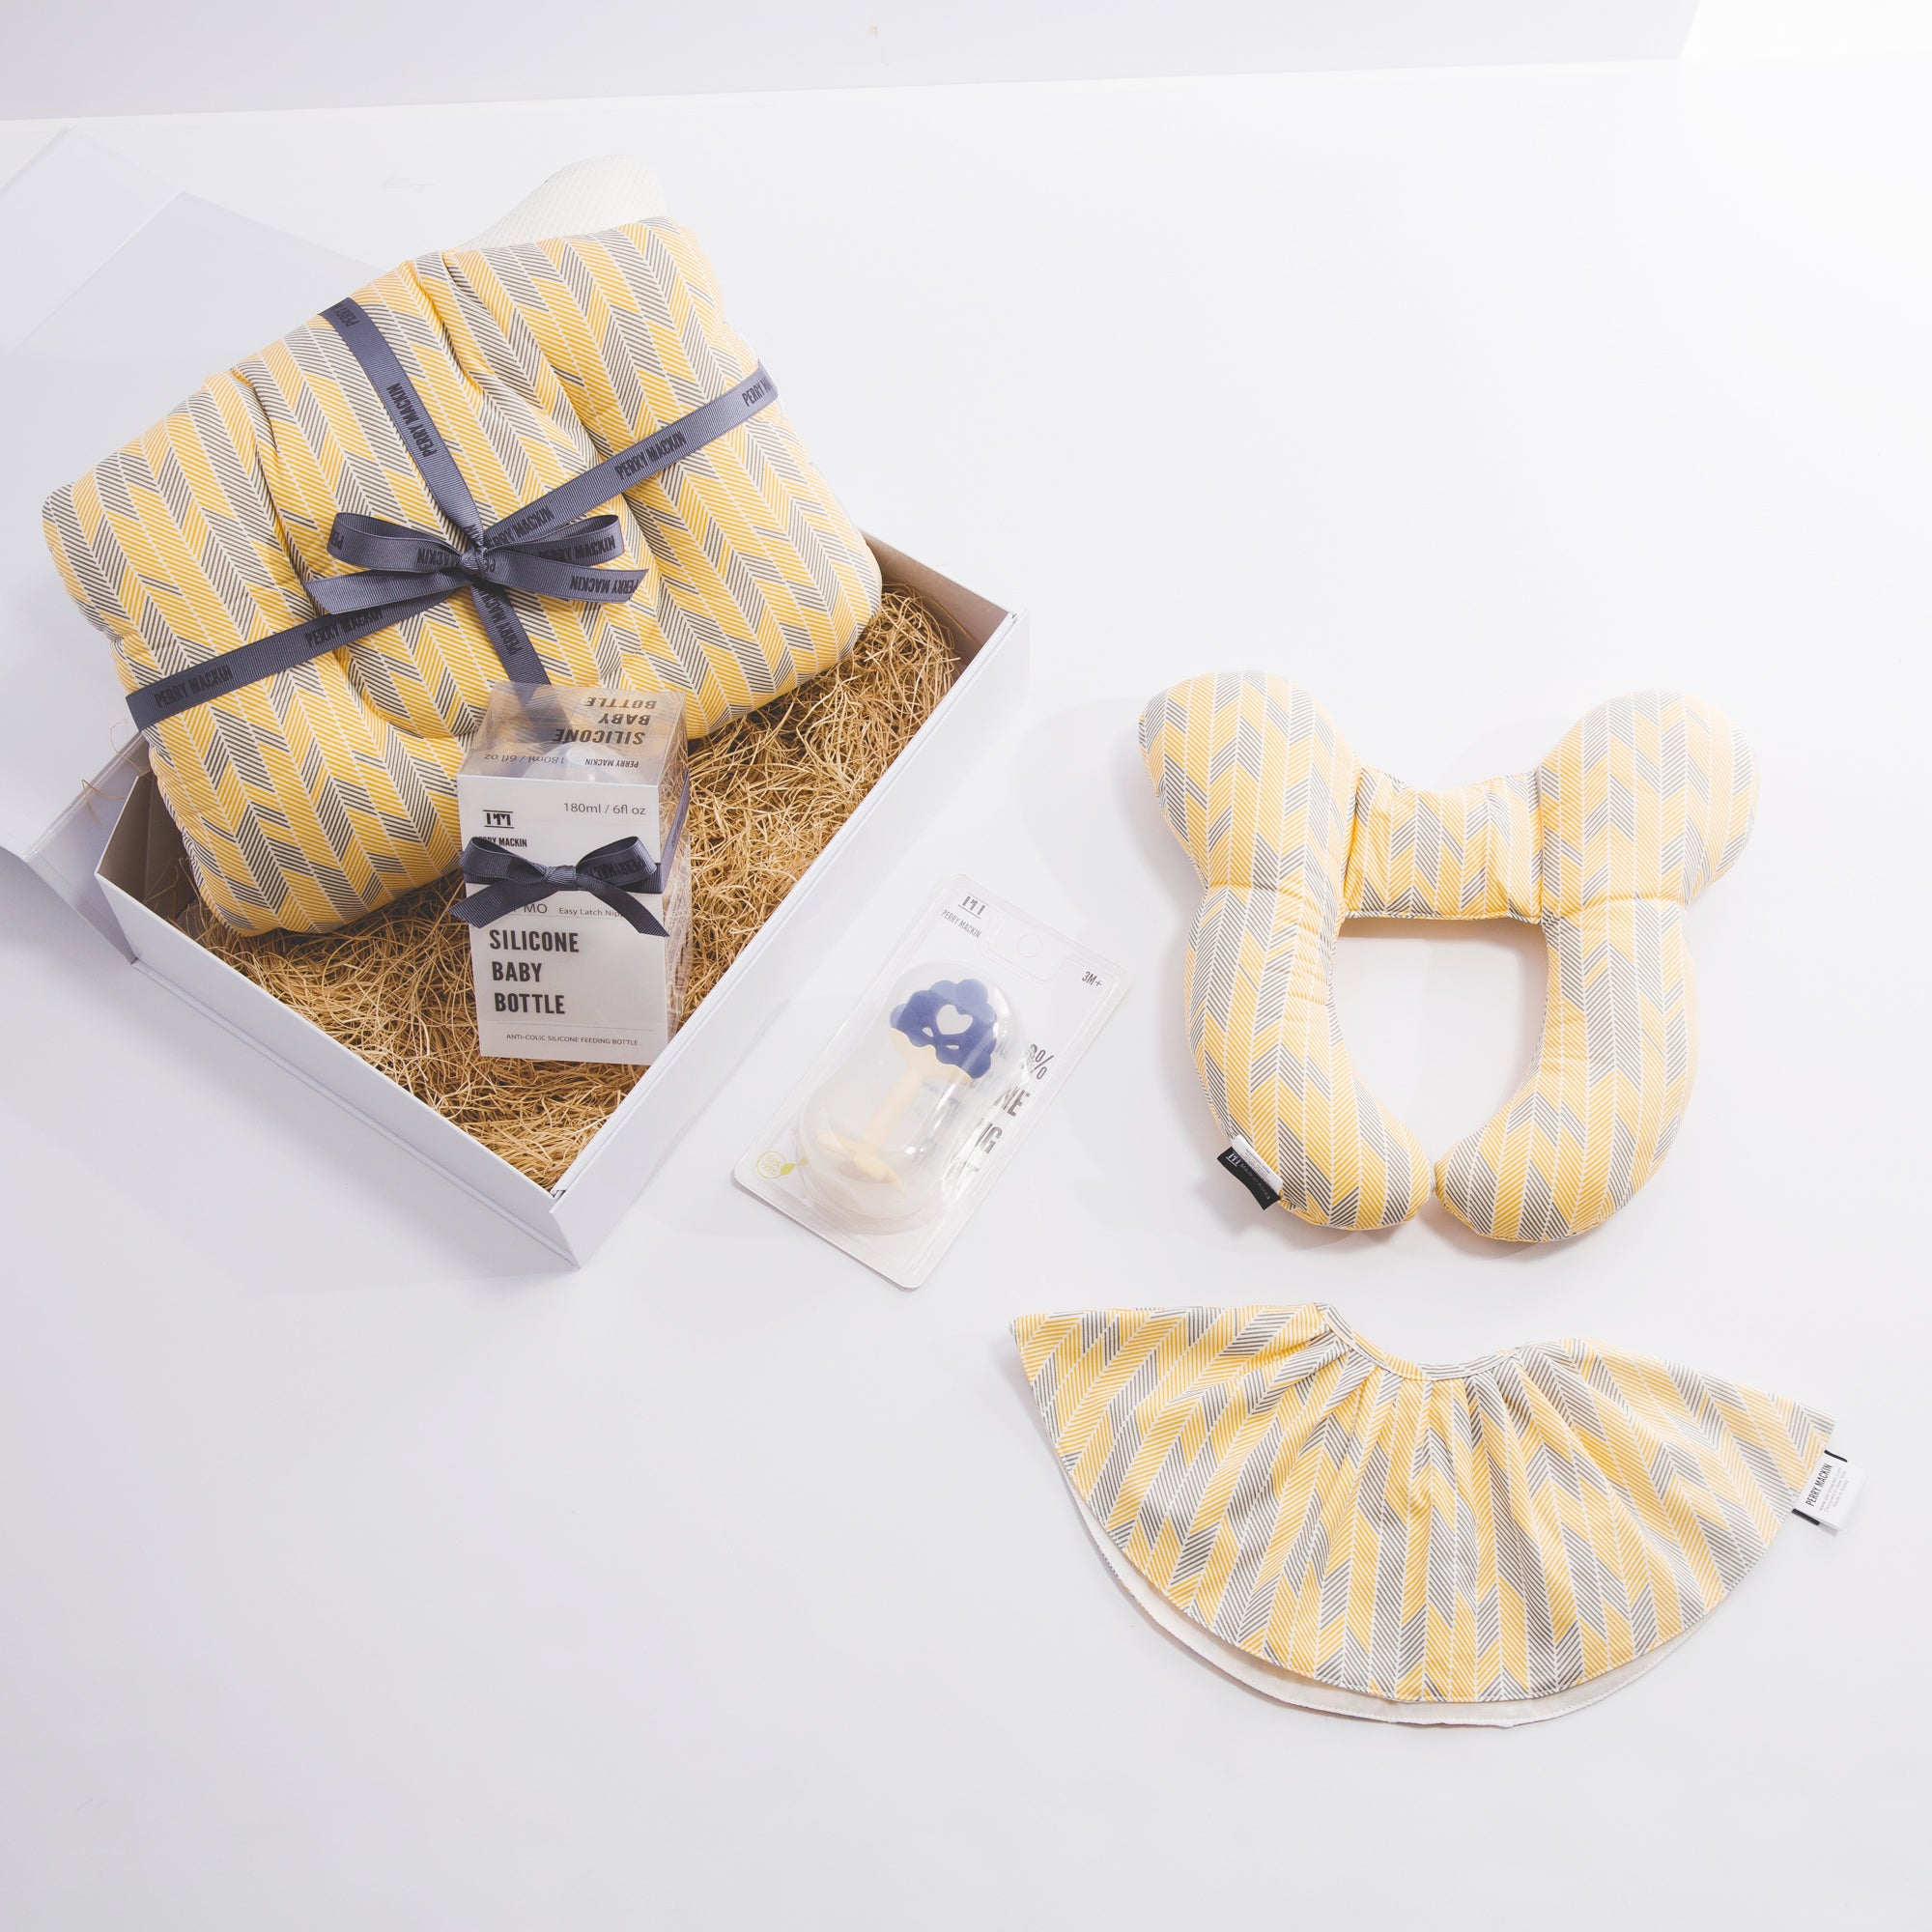 baby neck pillow, bib, teether gift set 3